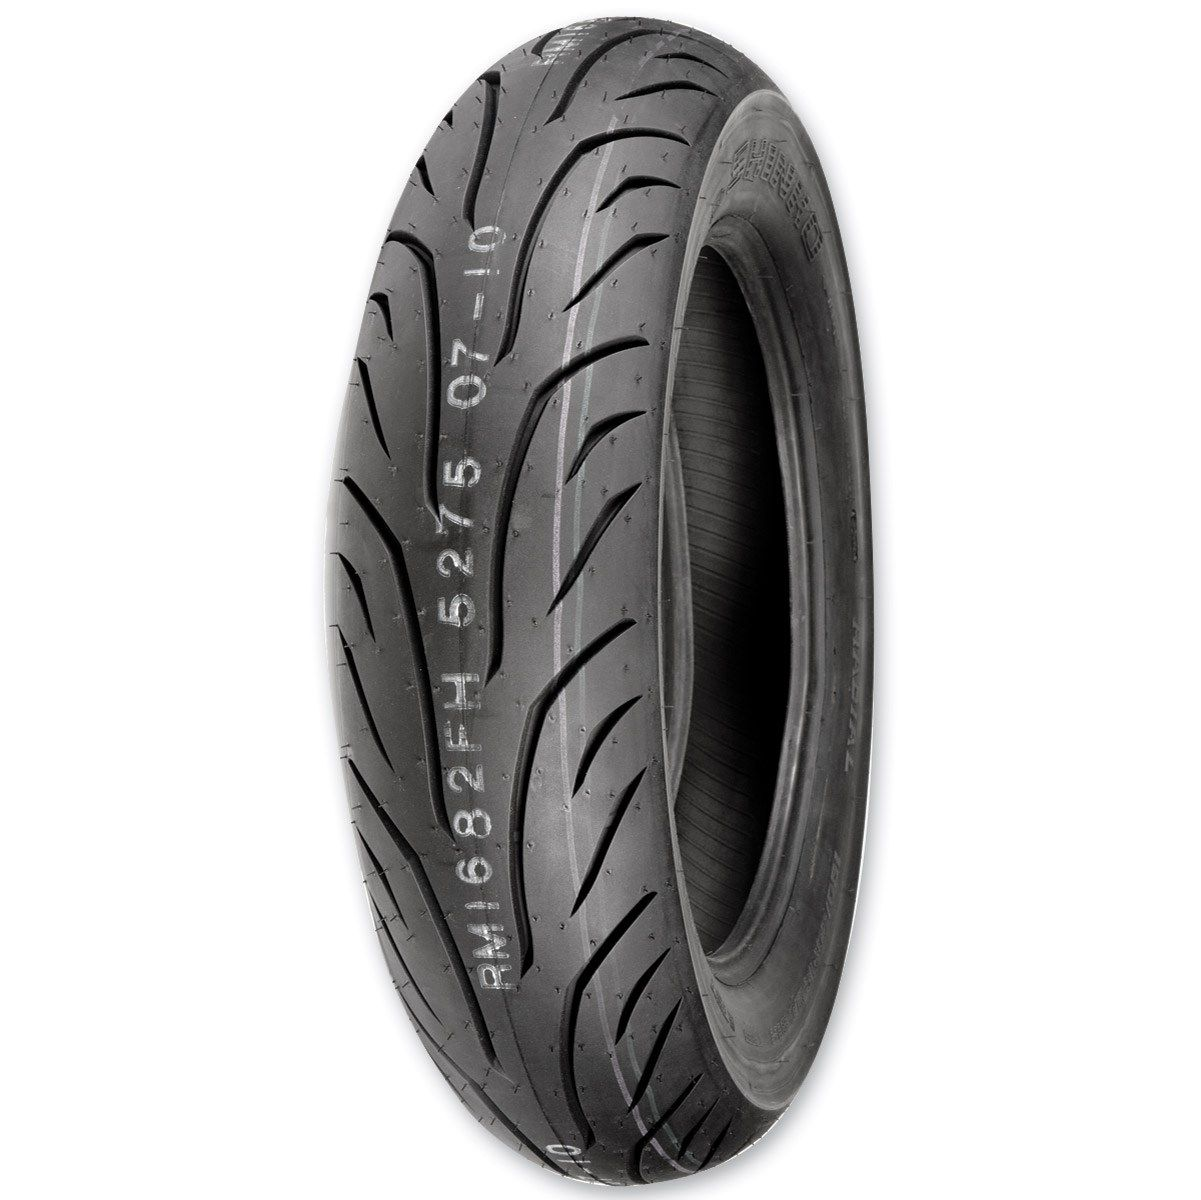 Pin On Tires